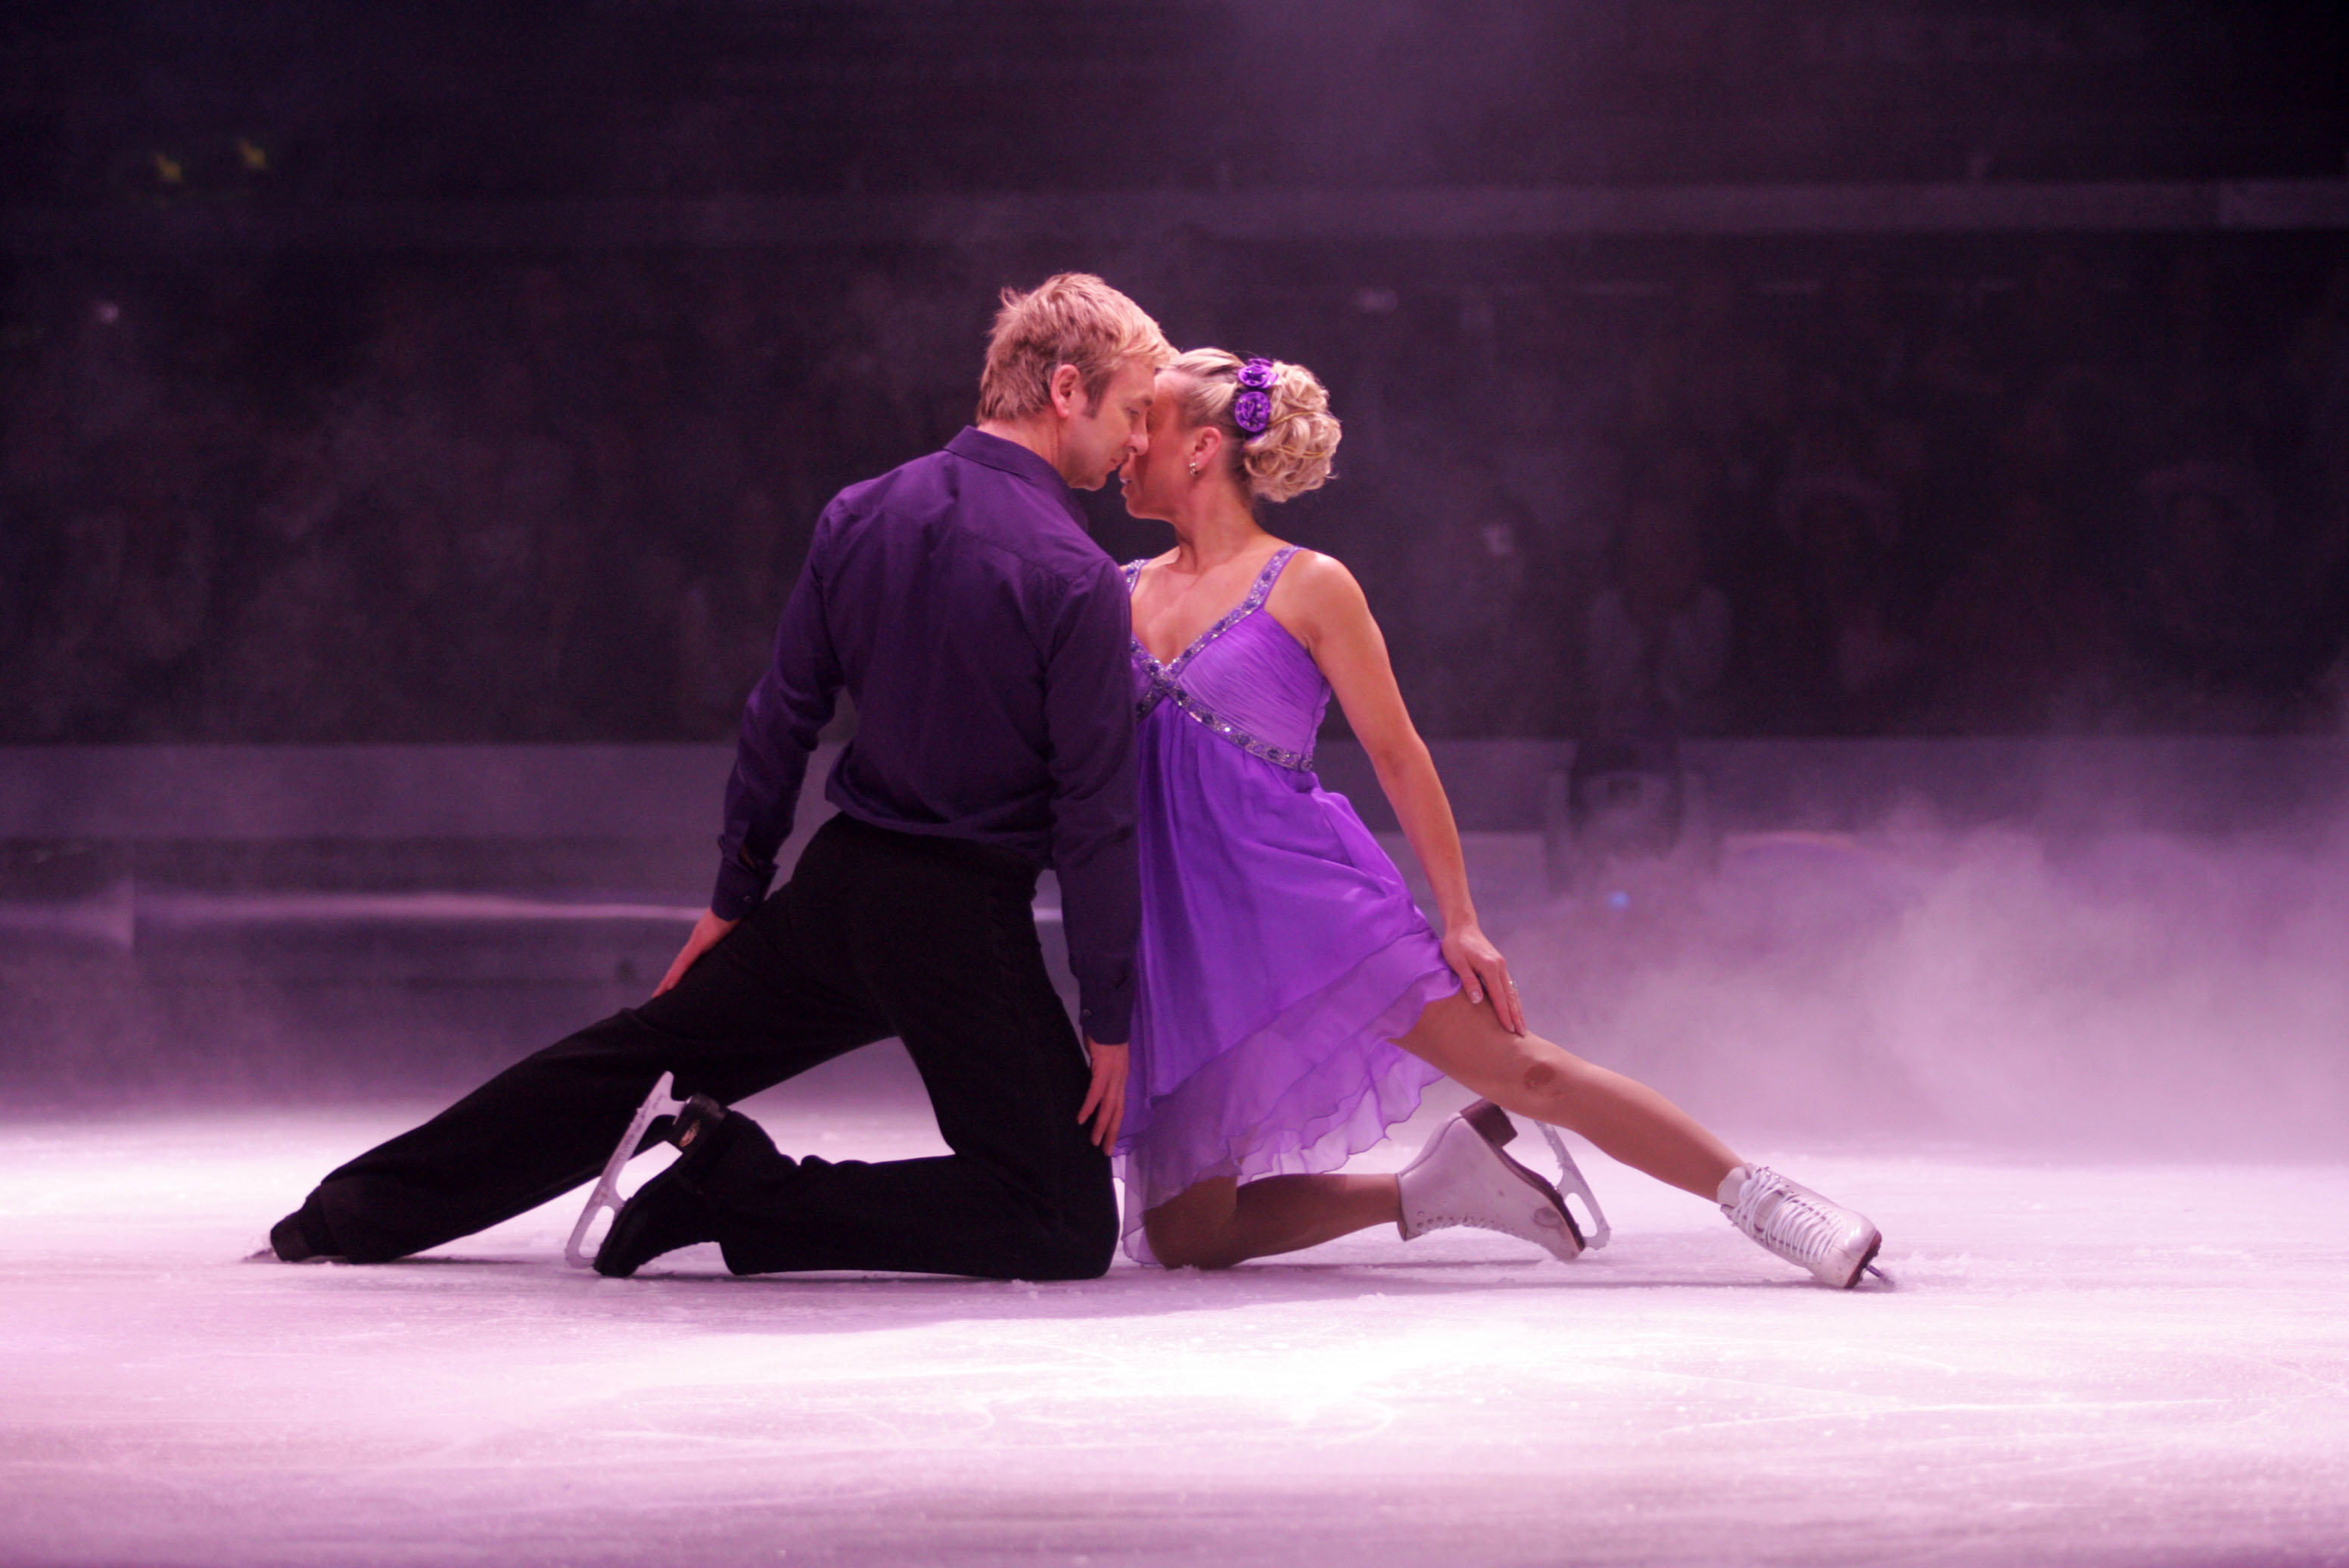 Torvill and Dean movie release date, cast and everything else we know about it